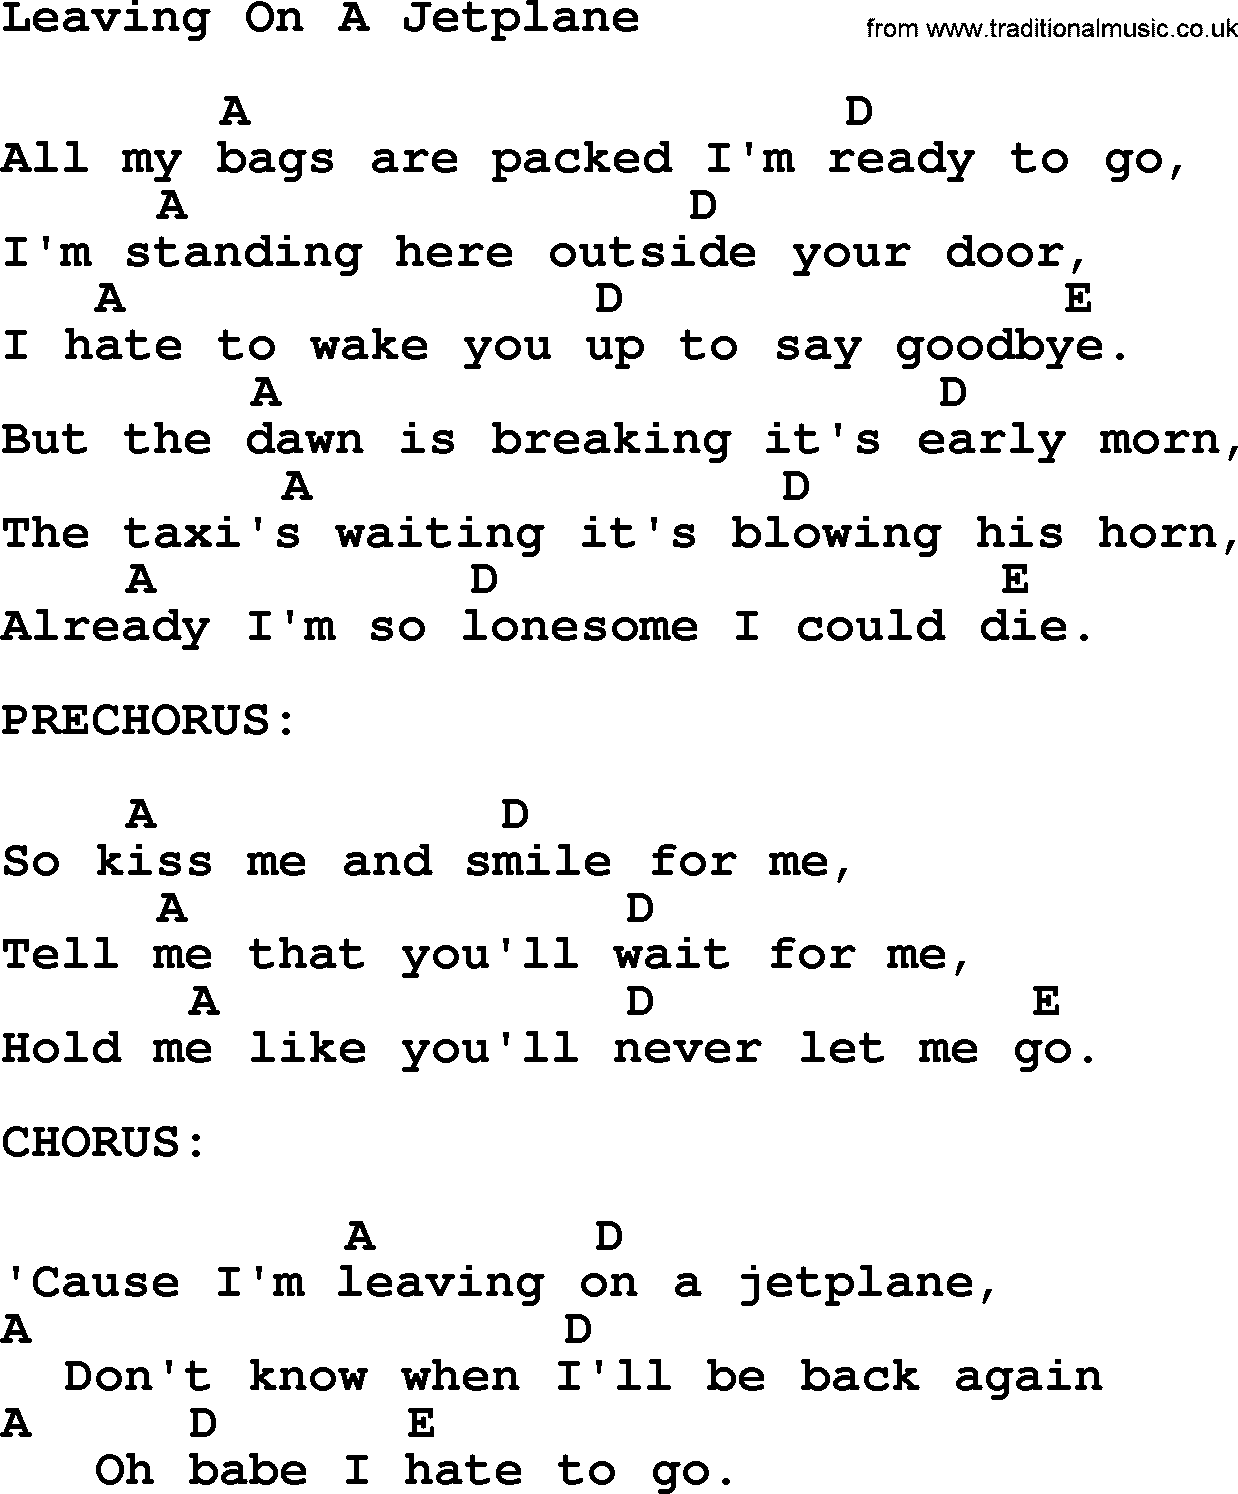 Peter paul and mary song leaving on a jetplane lyrics and chords peter paul and mary song leaving on a jetplane lyrics and chords hexwebz Gallery